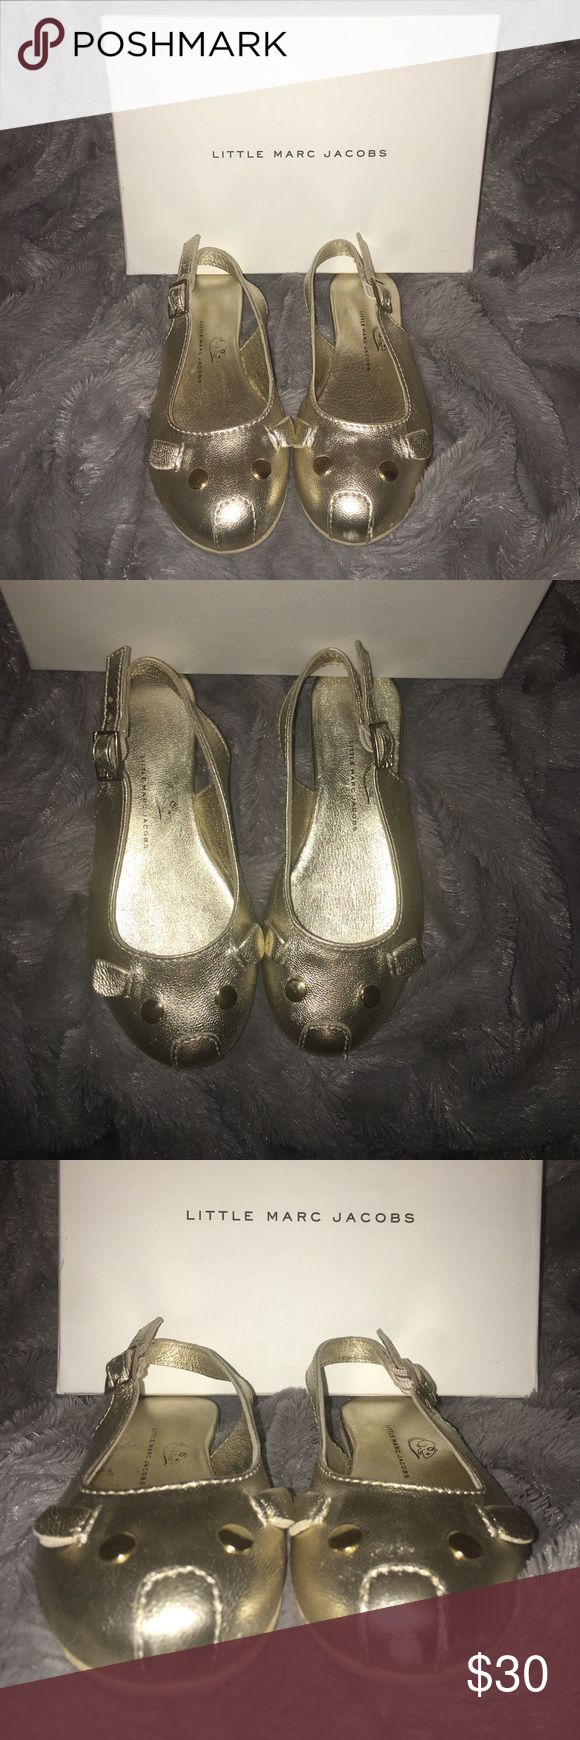 Little Marc Jacobs Leather Mouse Ballerinas Gold Leather Mouse Ballerinas opened at the back. Size 26 (US 9.5C) has some signs of wear in front of shoe Little Marc Jacobs Shoes Dress Shoes